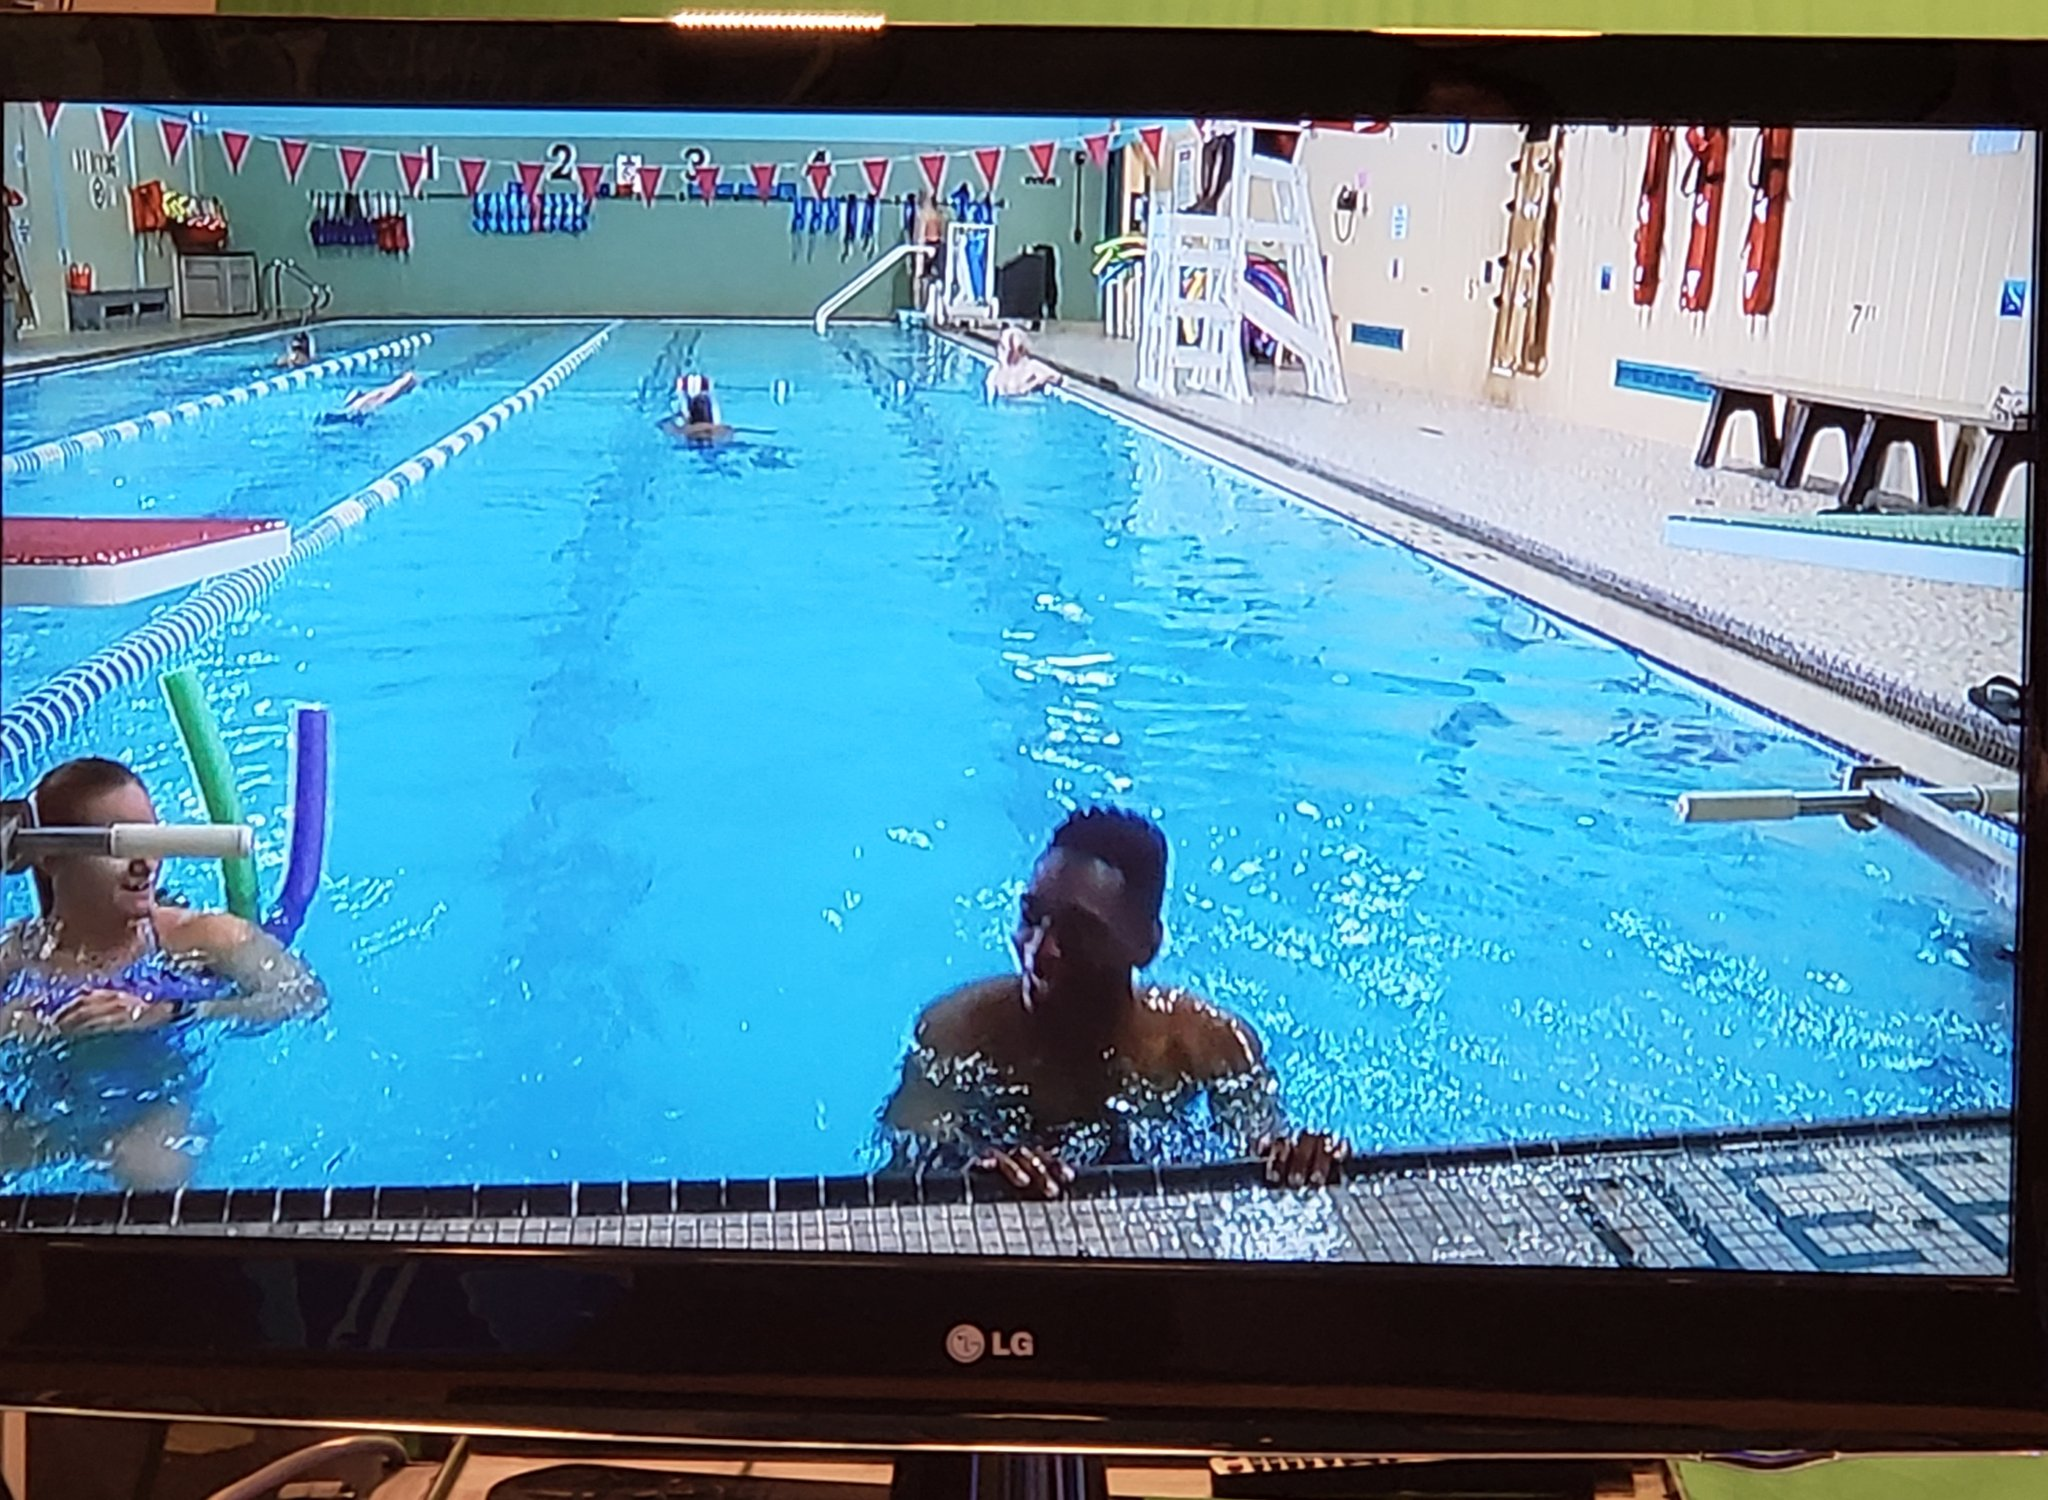 #Swim #Safety! Head to @khireephl17 to check out Khiree's amazing story and journey to learn how to swim. @phl17 #poolsafety #beachsafety https://t.co/CEAj6lrCfn